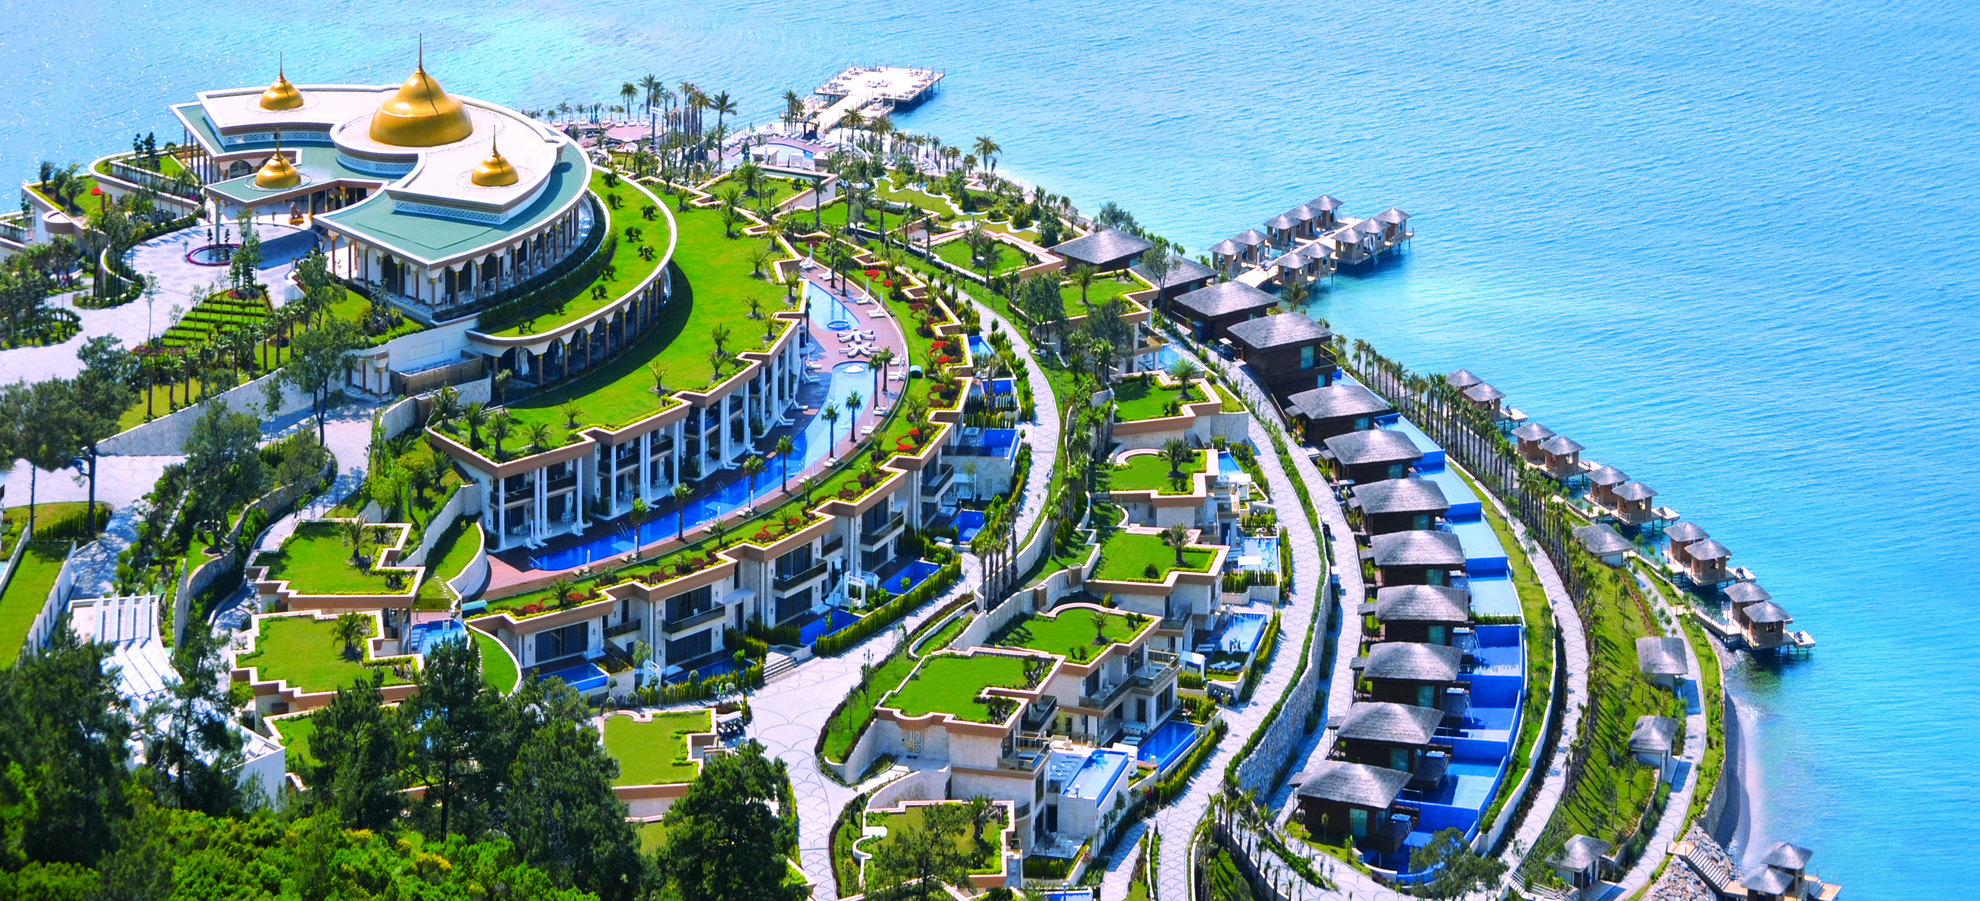 THE BODRUM by Paramount Hotels & Resorts  in Bodrum